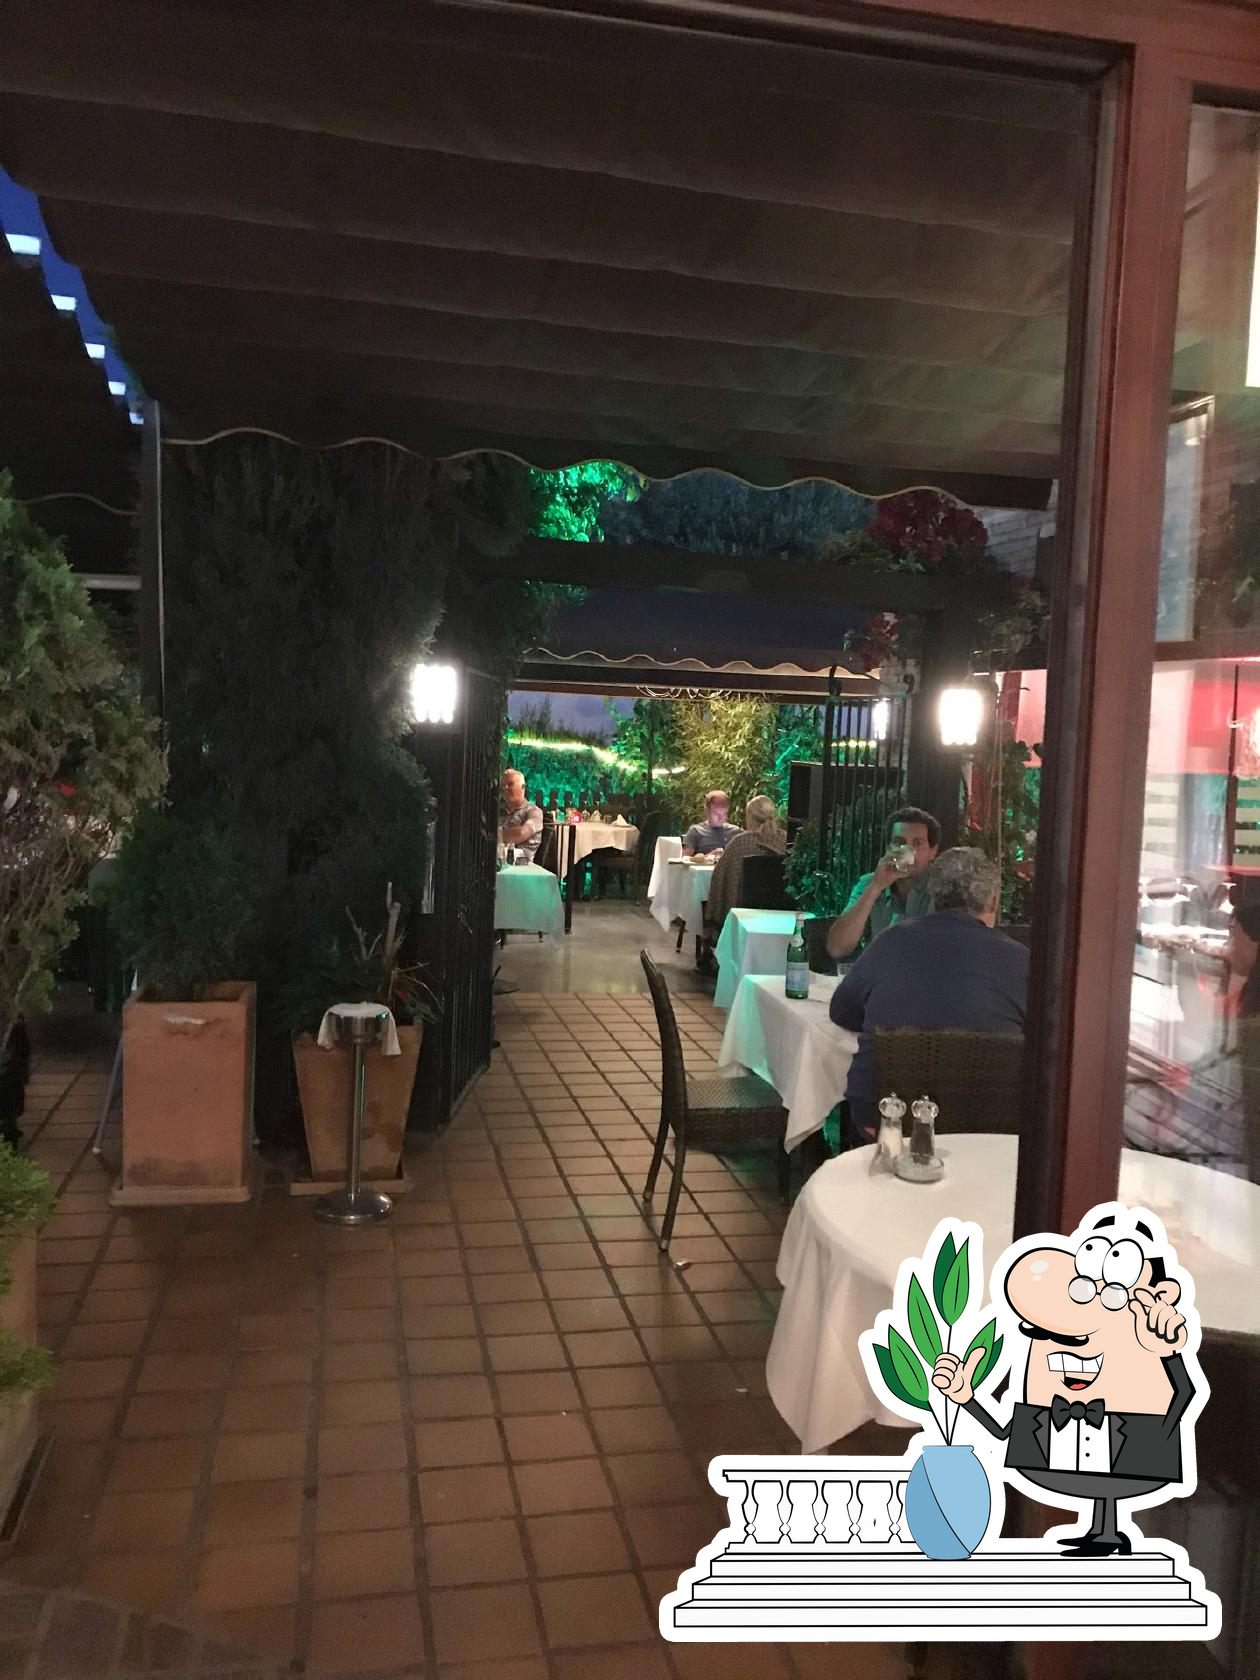 Check out how El Carnicero looks outside